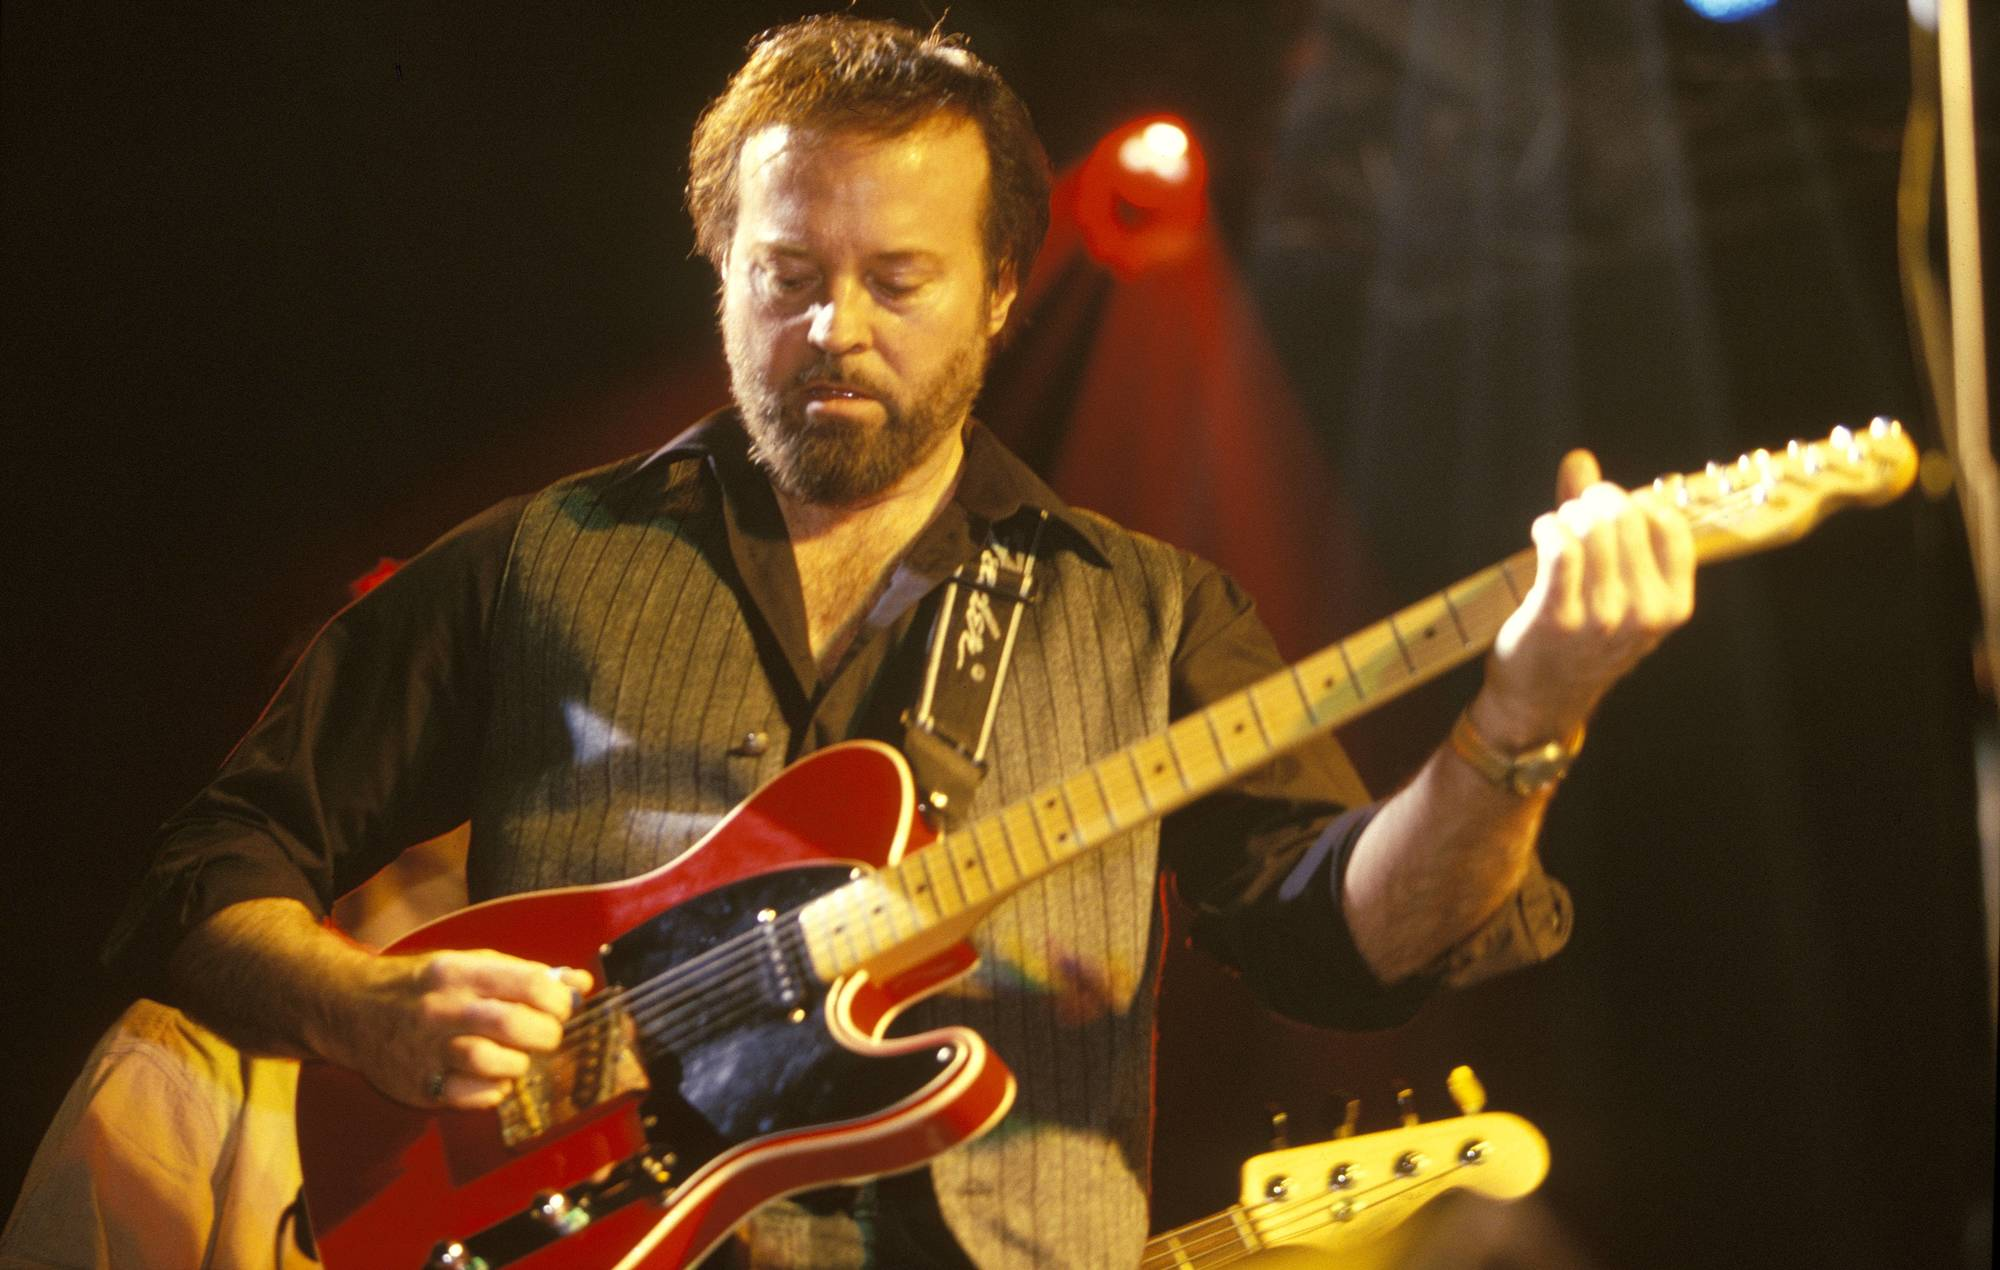 Paul McCartney, Led Zeppelin, Eric Clapton and more sign guitar to raise money for Jerry Donahue